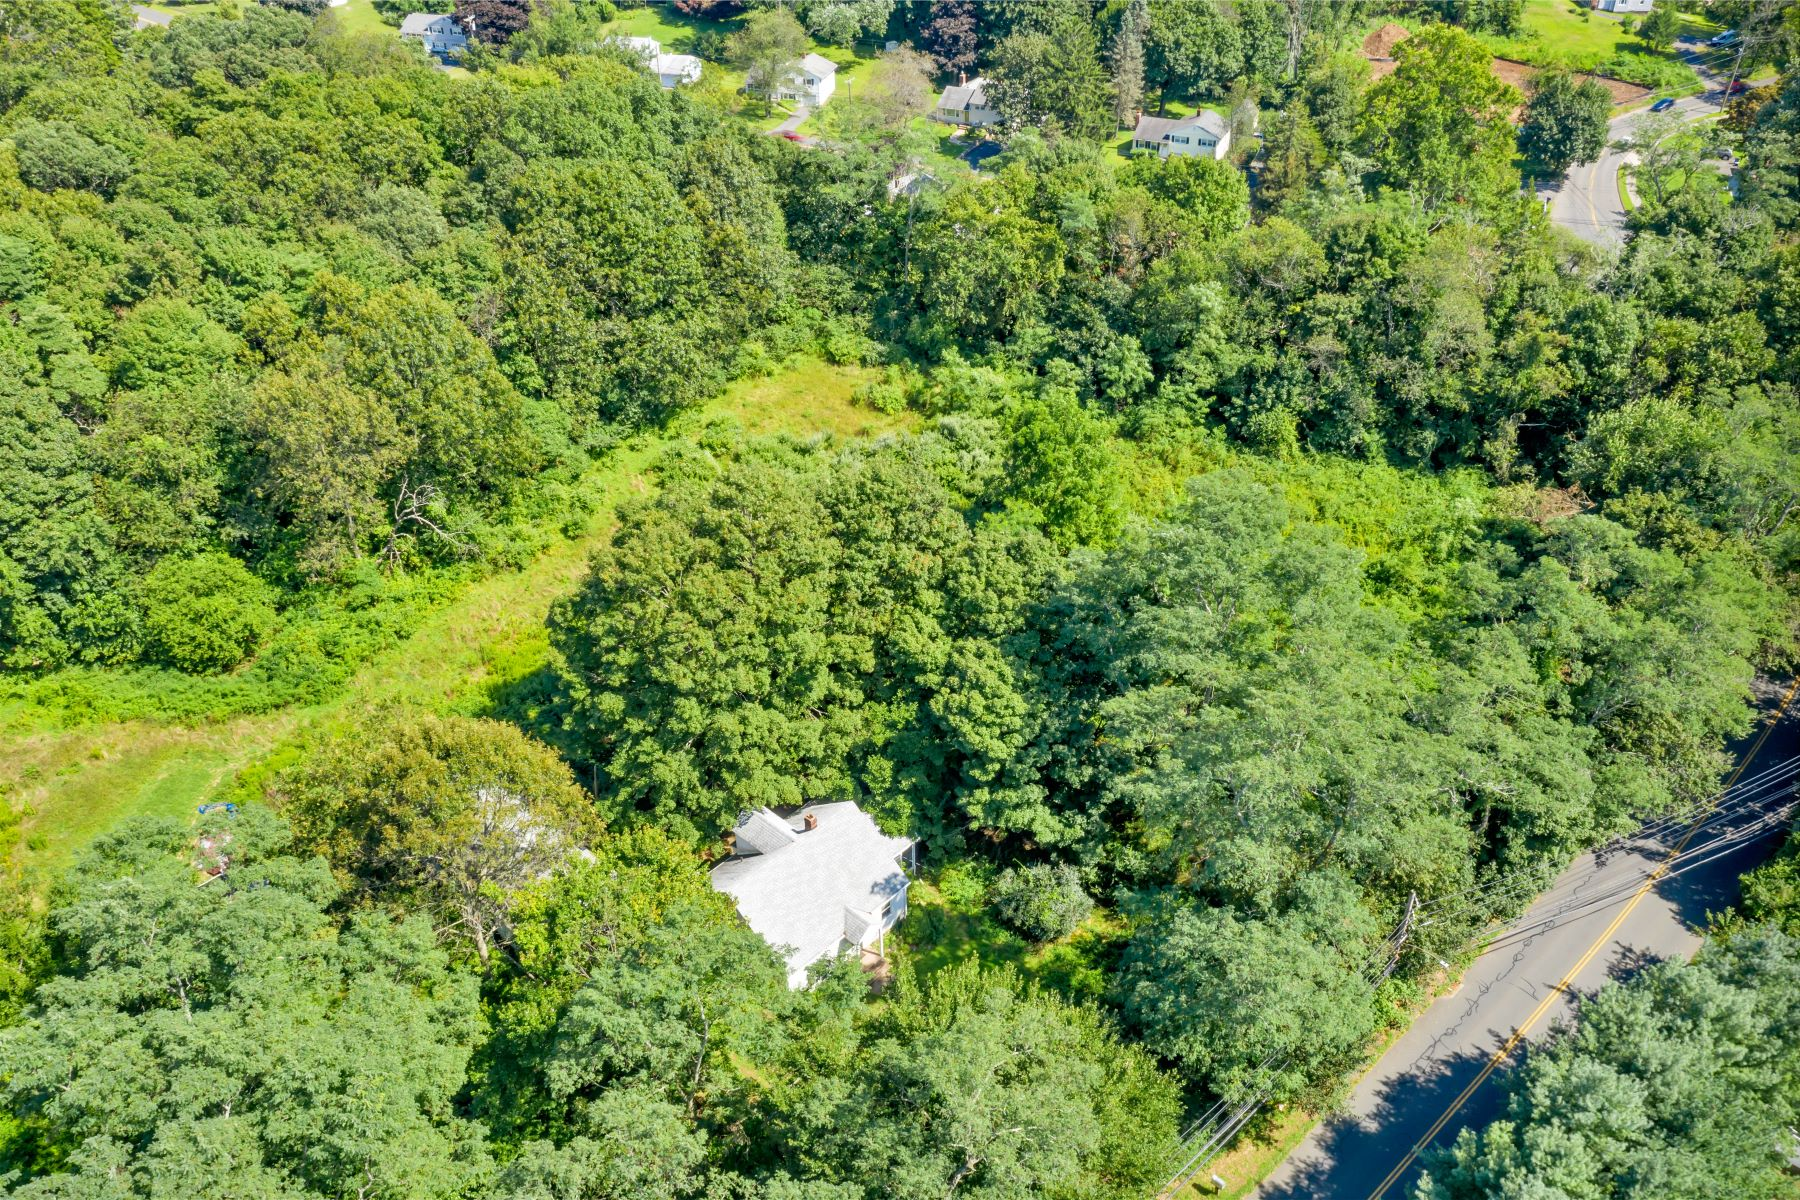 Single Family Homes for Sale at 127 Foxon Hill Road 127 Foxon Hill Rd East Haven, Connecticut 06513 United States